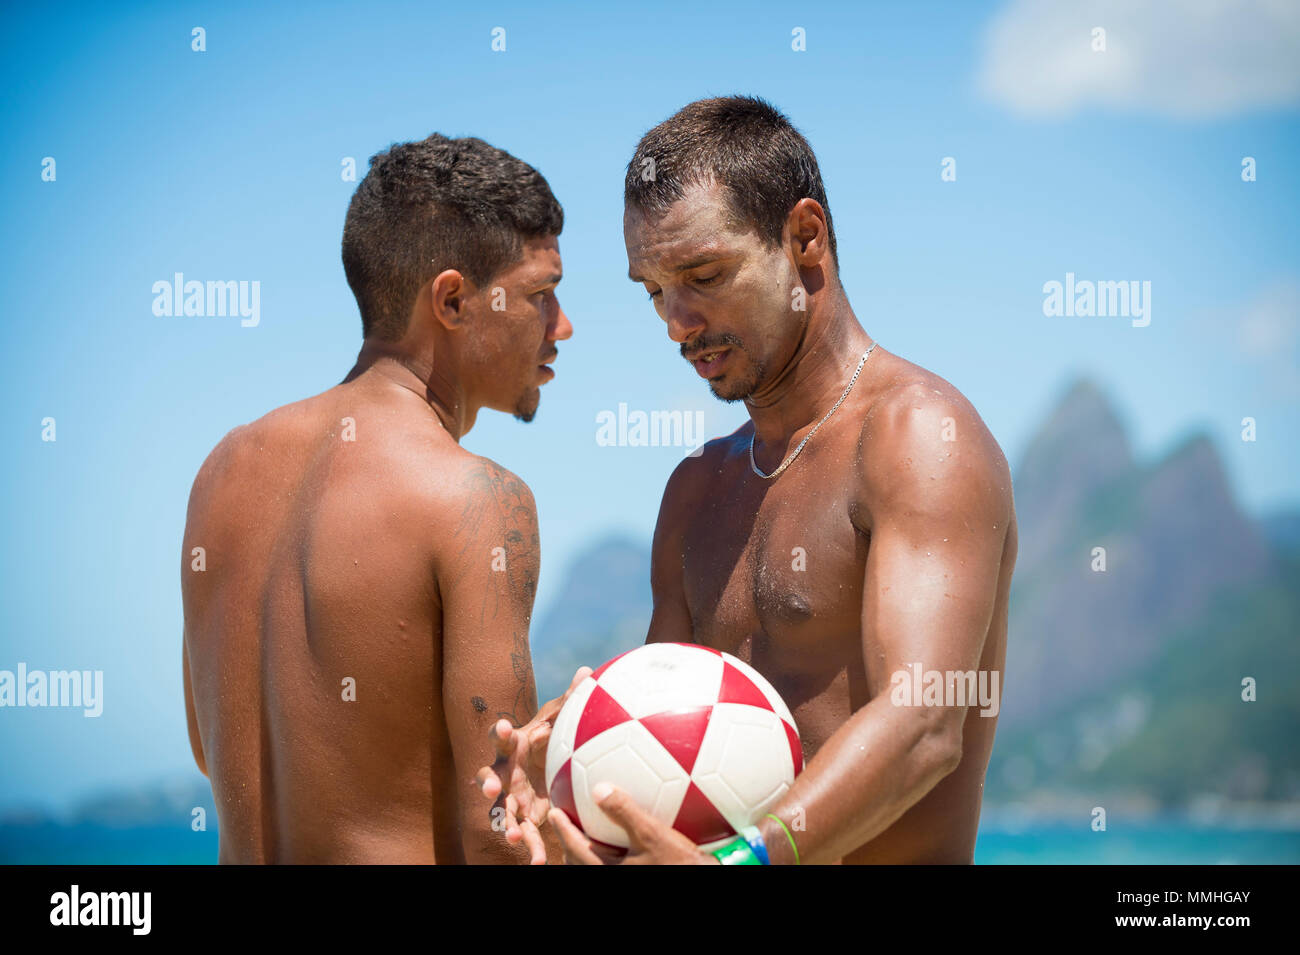 RIO DE JANEIRO - FEBRUARY 9, 2017: Young brazilian men stand on the beach with a football at Arpoador, against a skyline view of two brothers mountain - Stock Image